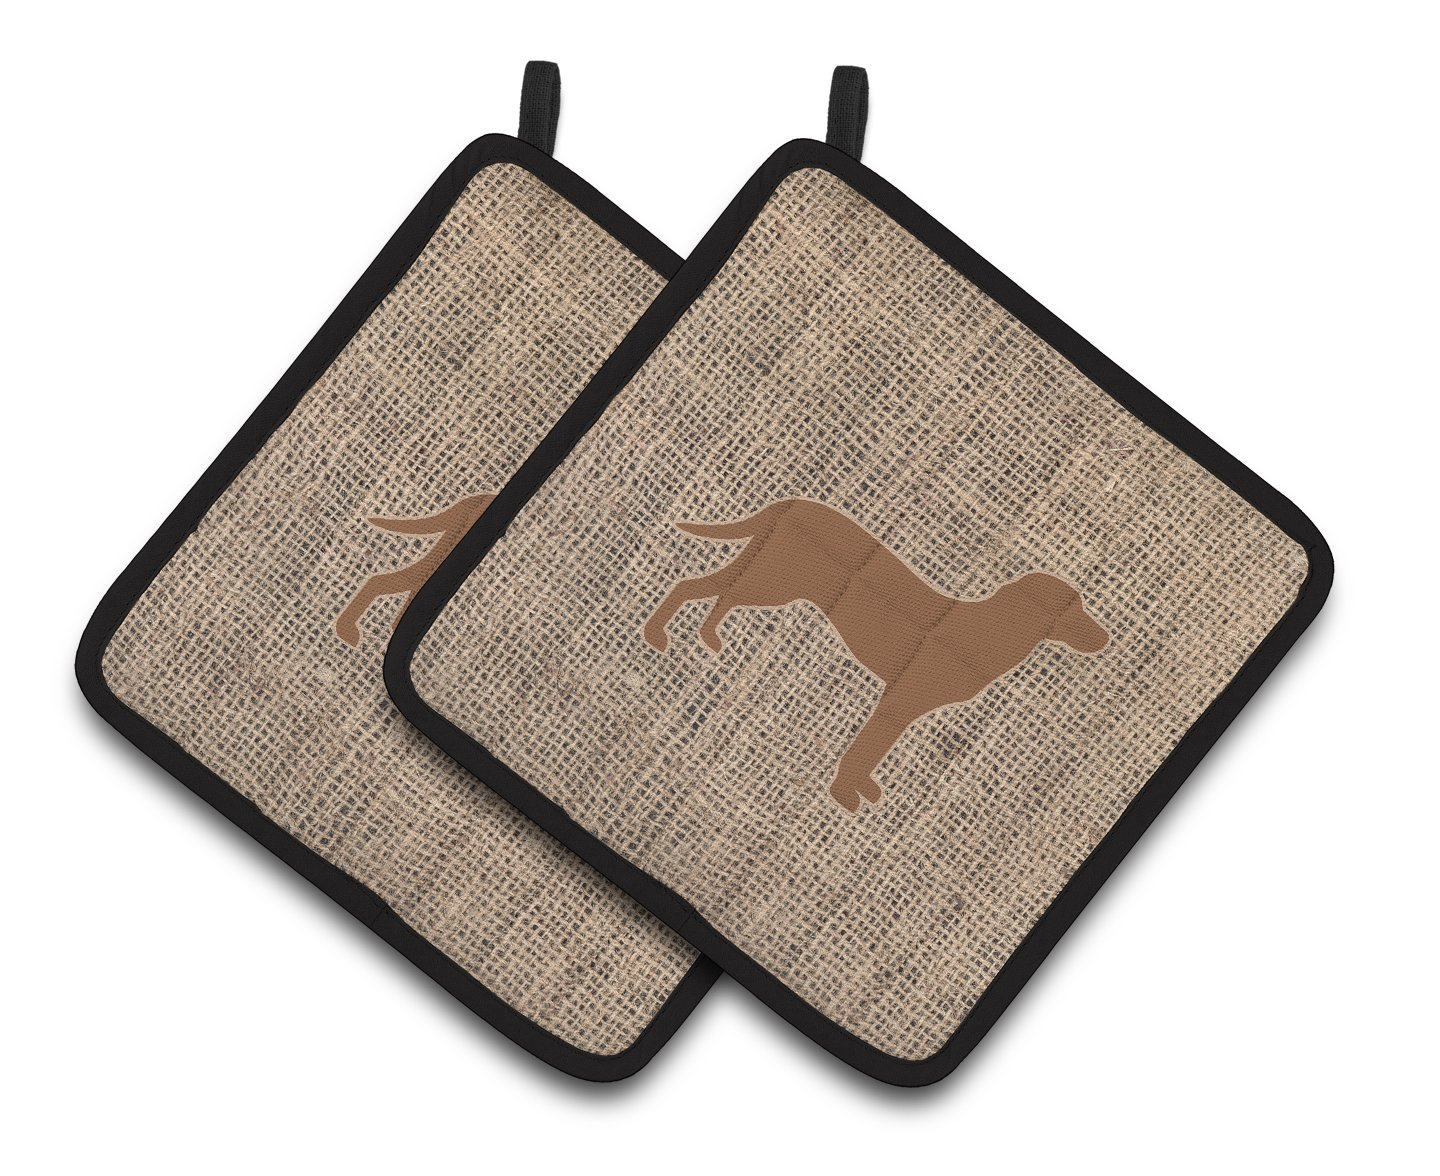 Multicolor 7.5HX7.5W Carolines Treasures Labrador Faux Burlap /& Brown Pair of Pot Holders BB1116-BL-BN-PTHD